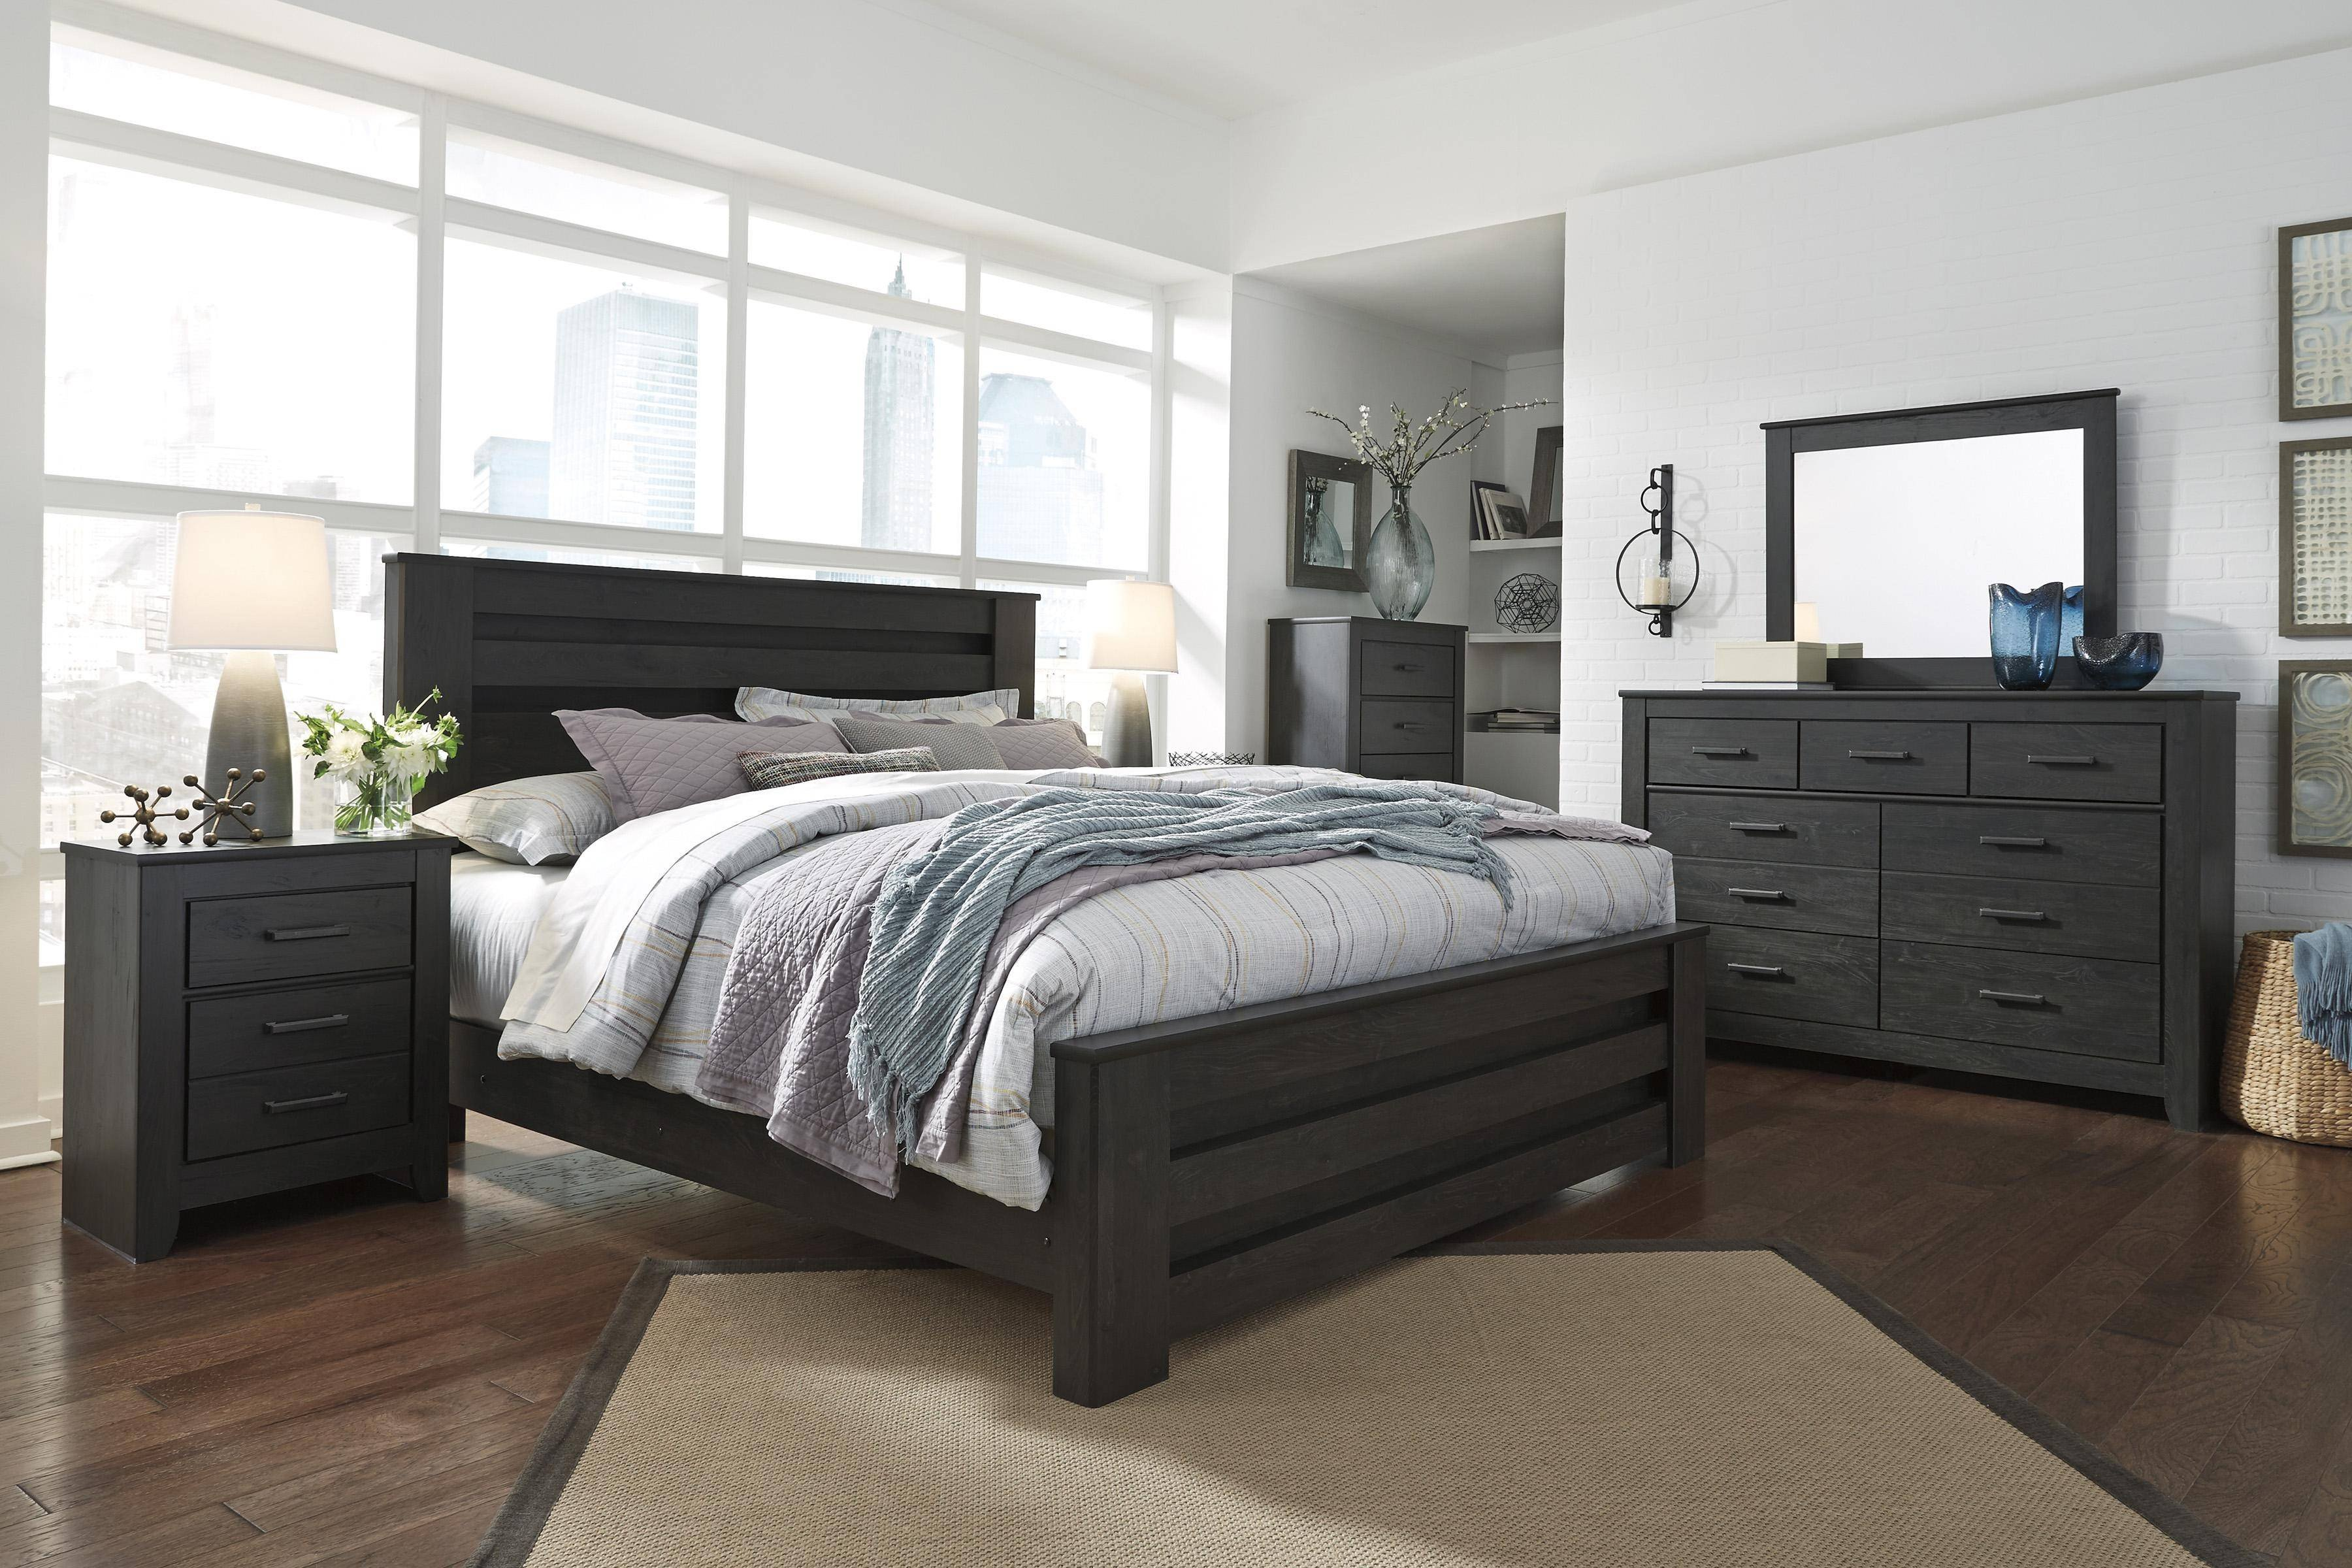 Ashley Bedroom Furniture Sale Luxury ashley Brinxton B249 King Size Platform Bedroom Set 5pcs In